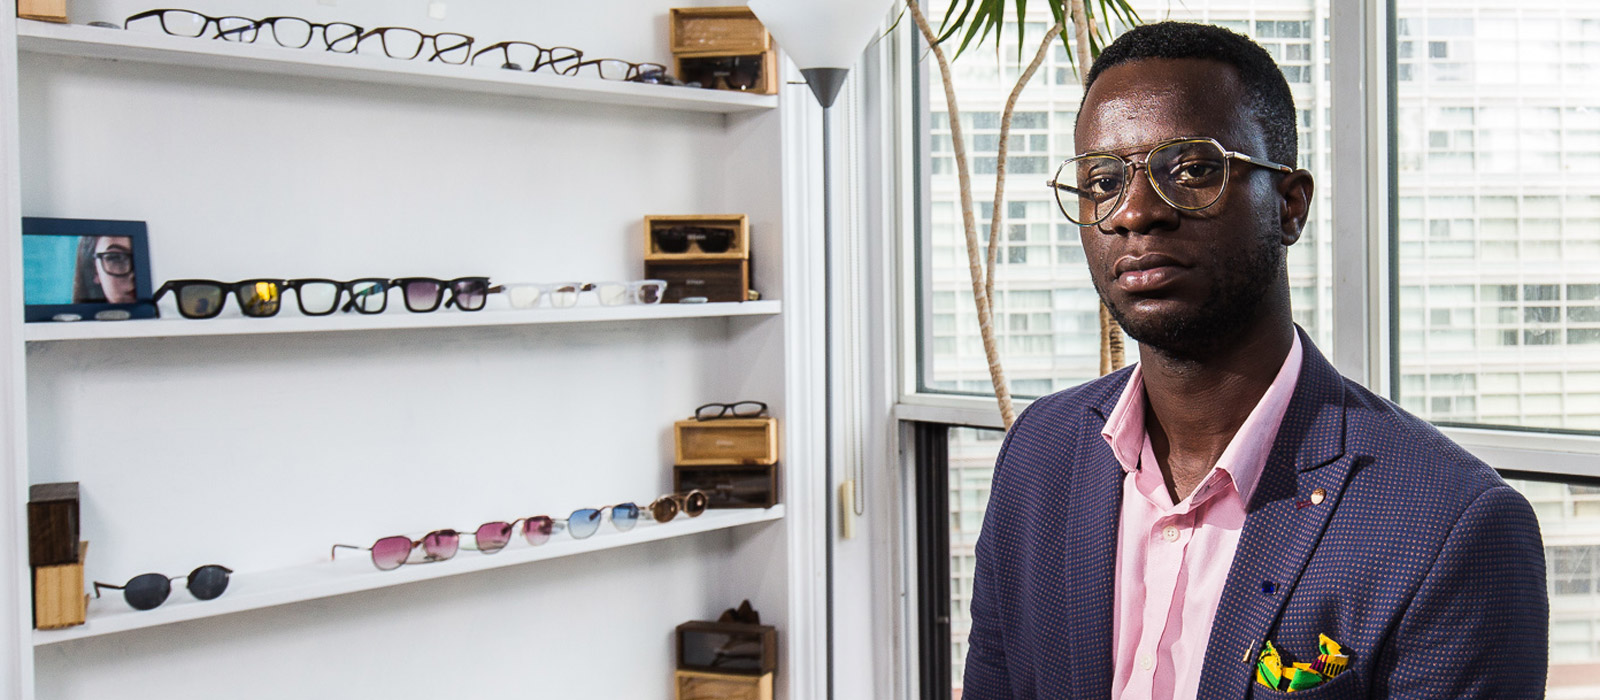 Nana Osei in his downtown Toronto workshop with eyeglasses on a wall in the background.